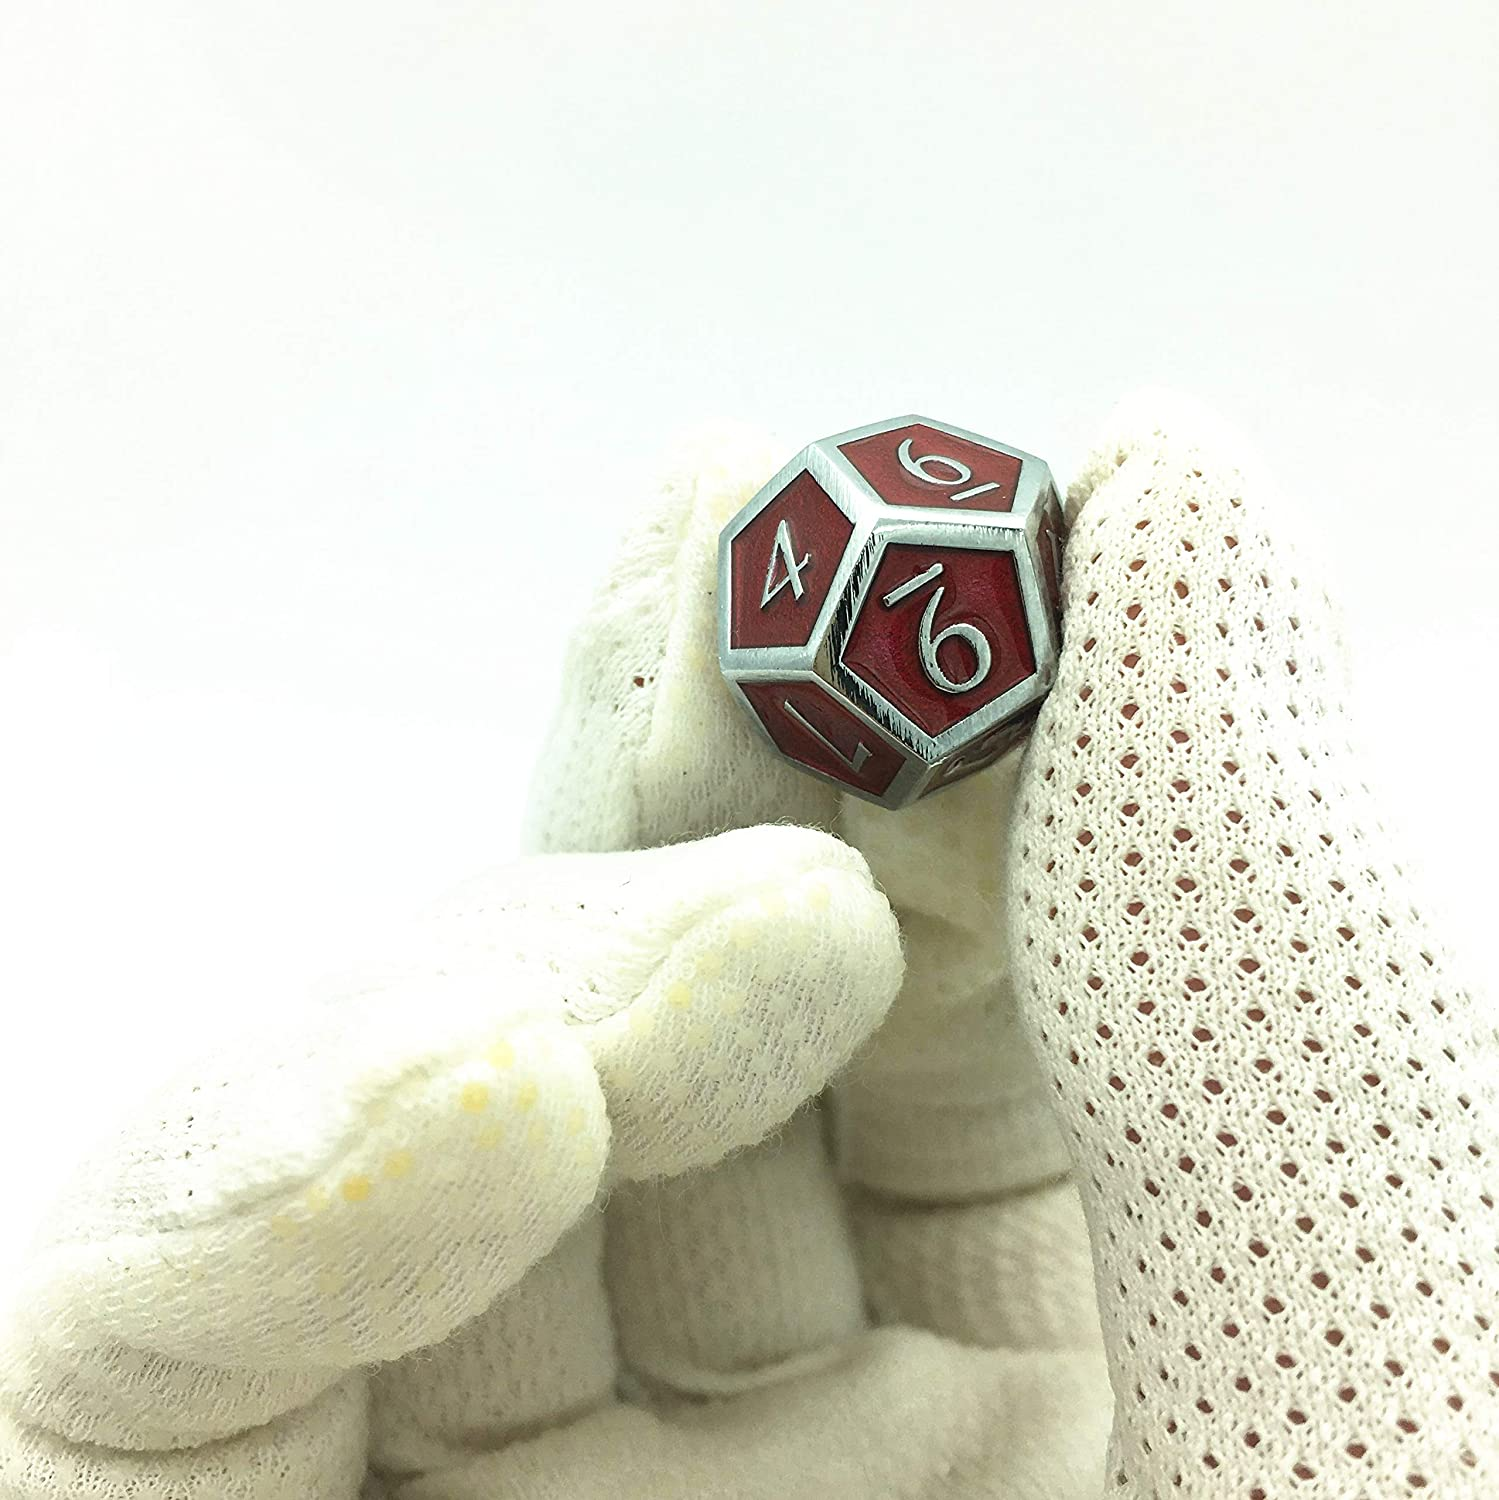 Metallic Tweezers for DND RPG,Chrome Color /& Blood-red Background. Momostar Solid Polyhedron Dice